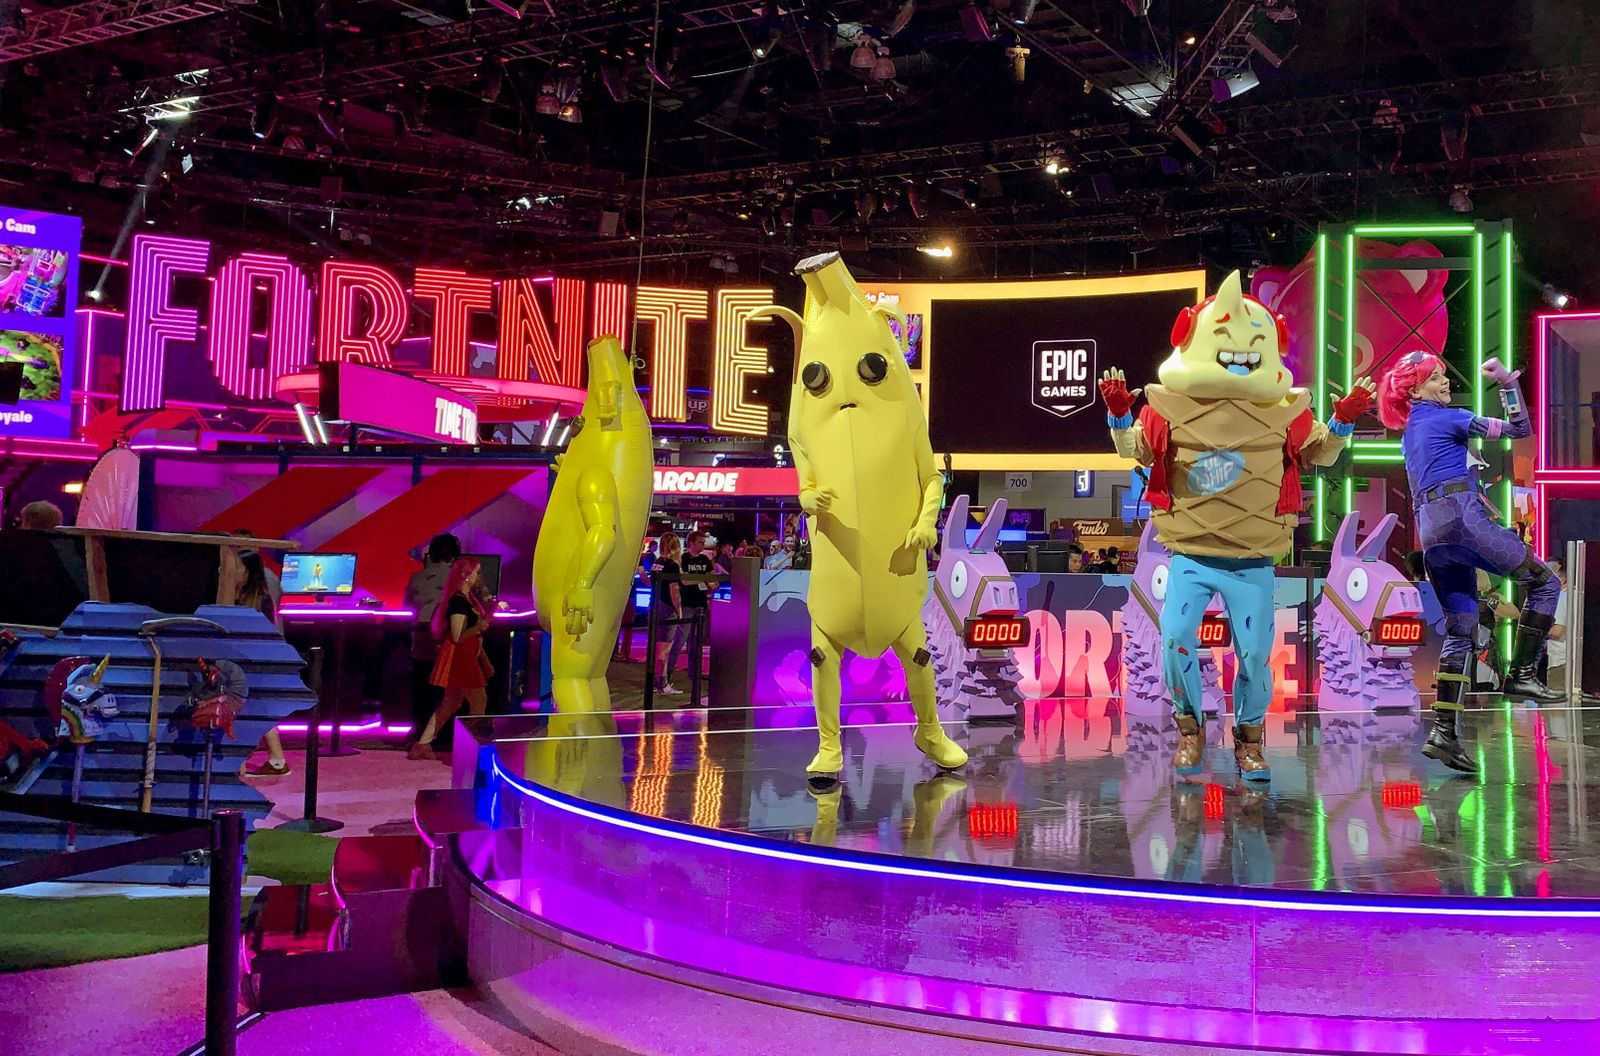 Fortnite vs. Apple Photo taken in June 2019 shows Epic Games Inc. s booth featuring its popular video game Fortnite in